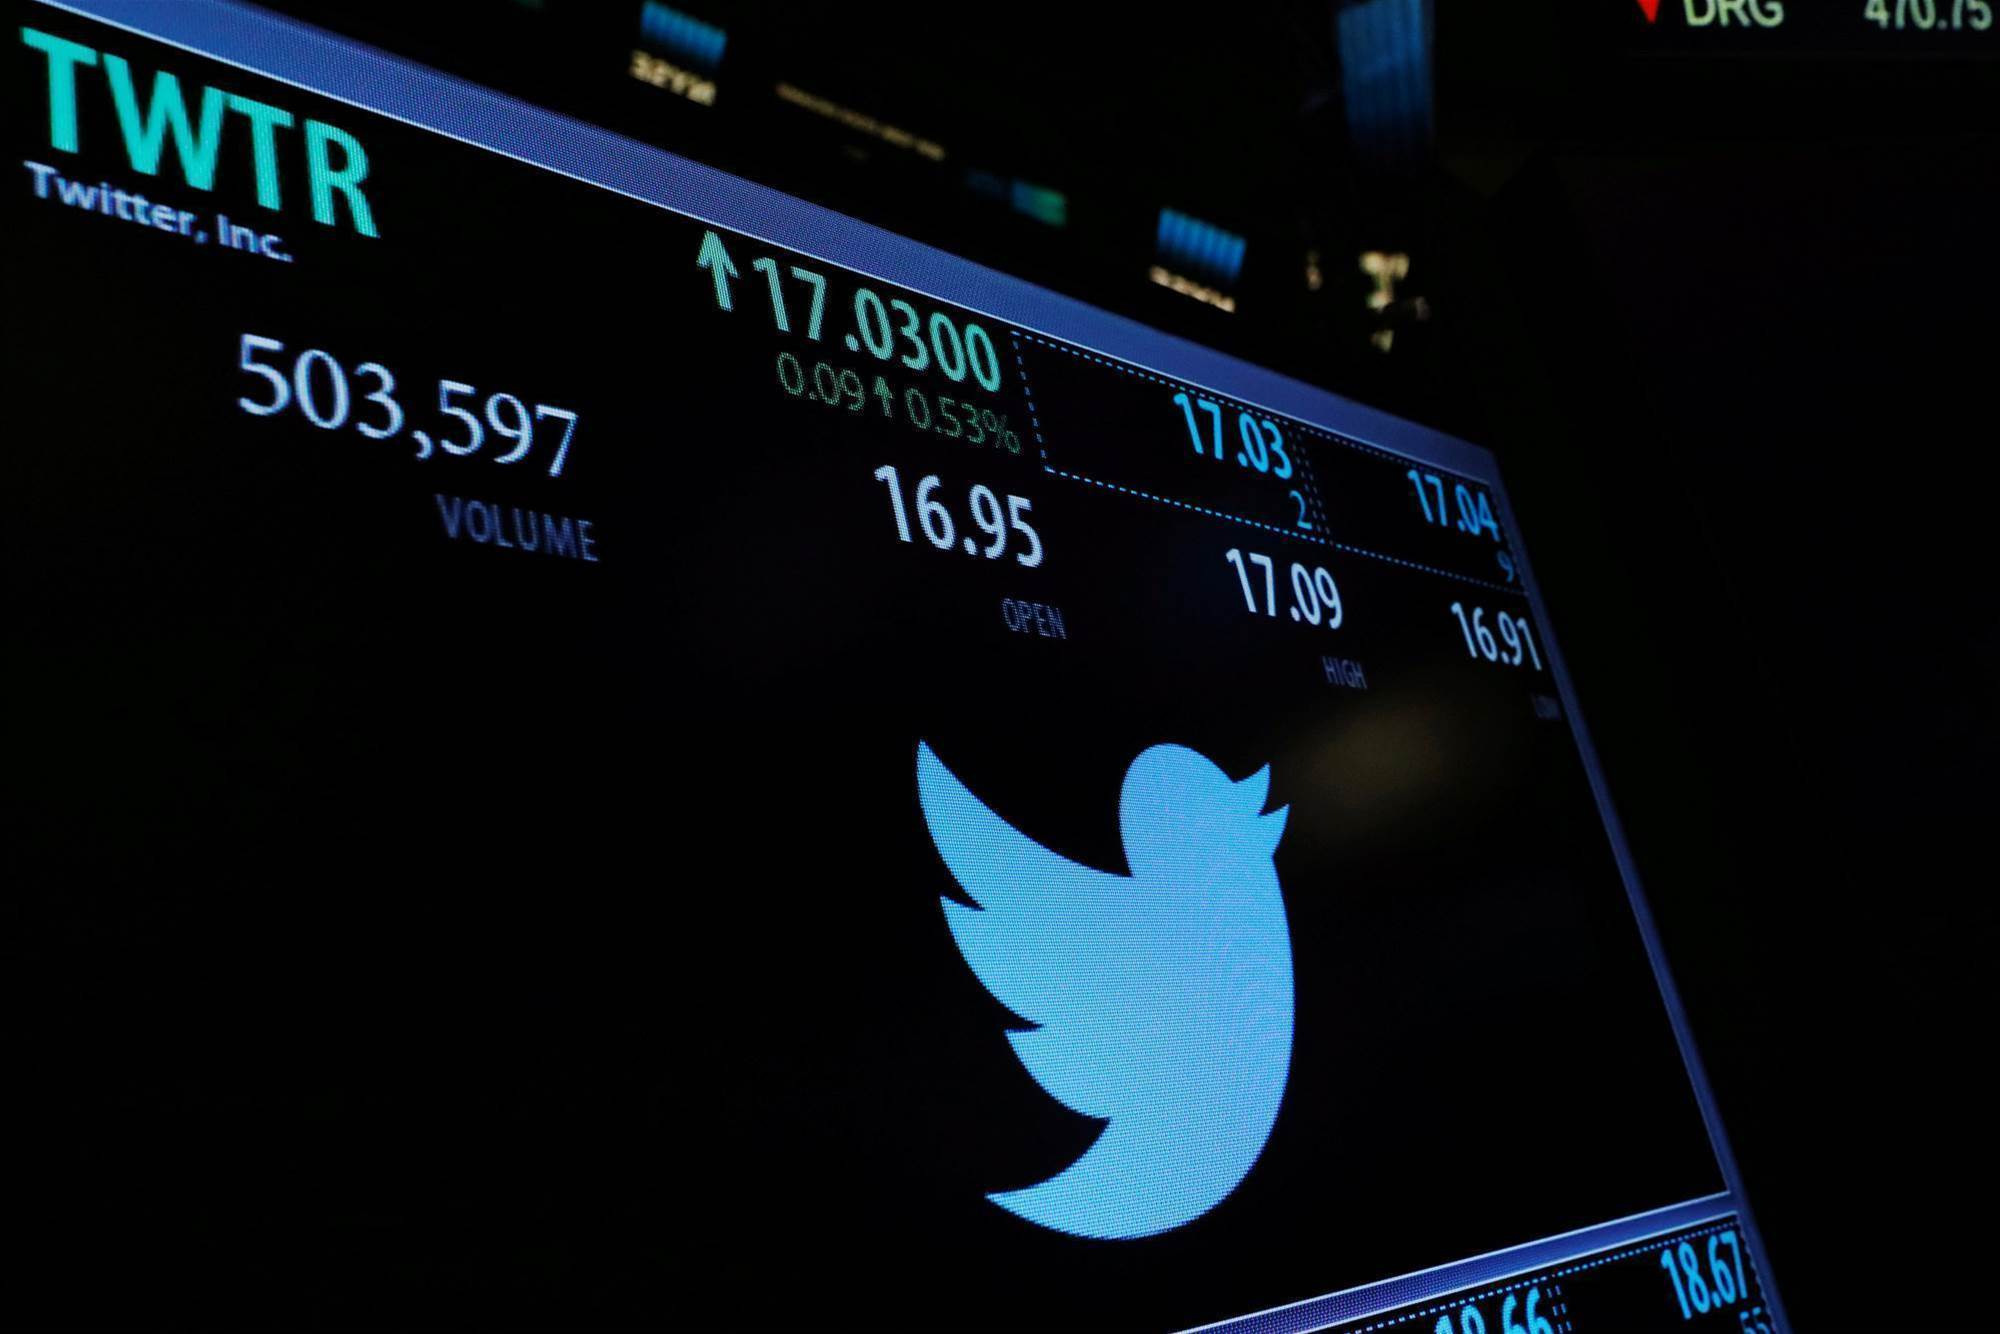 Twitter glitch leaves 330 million user passwords exposed